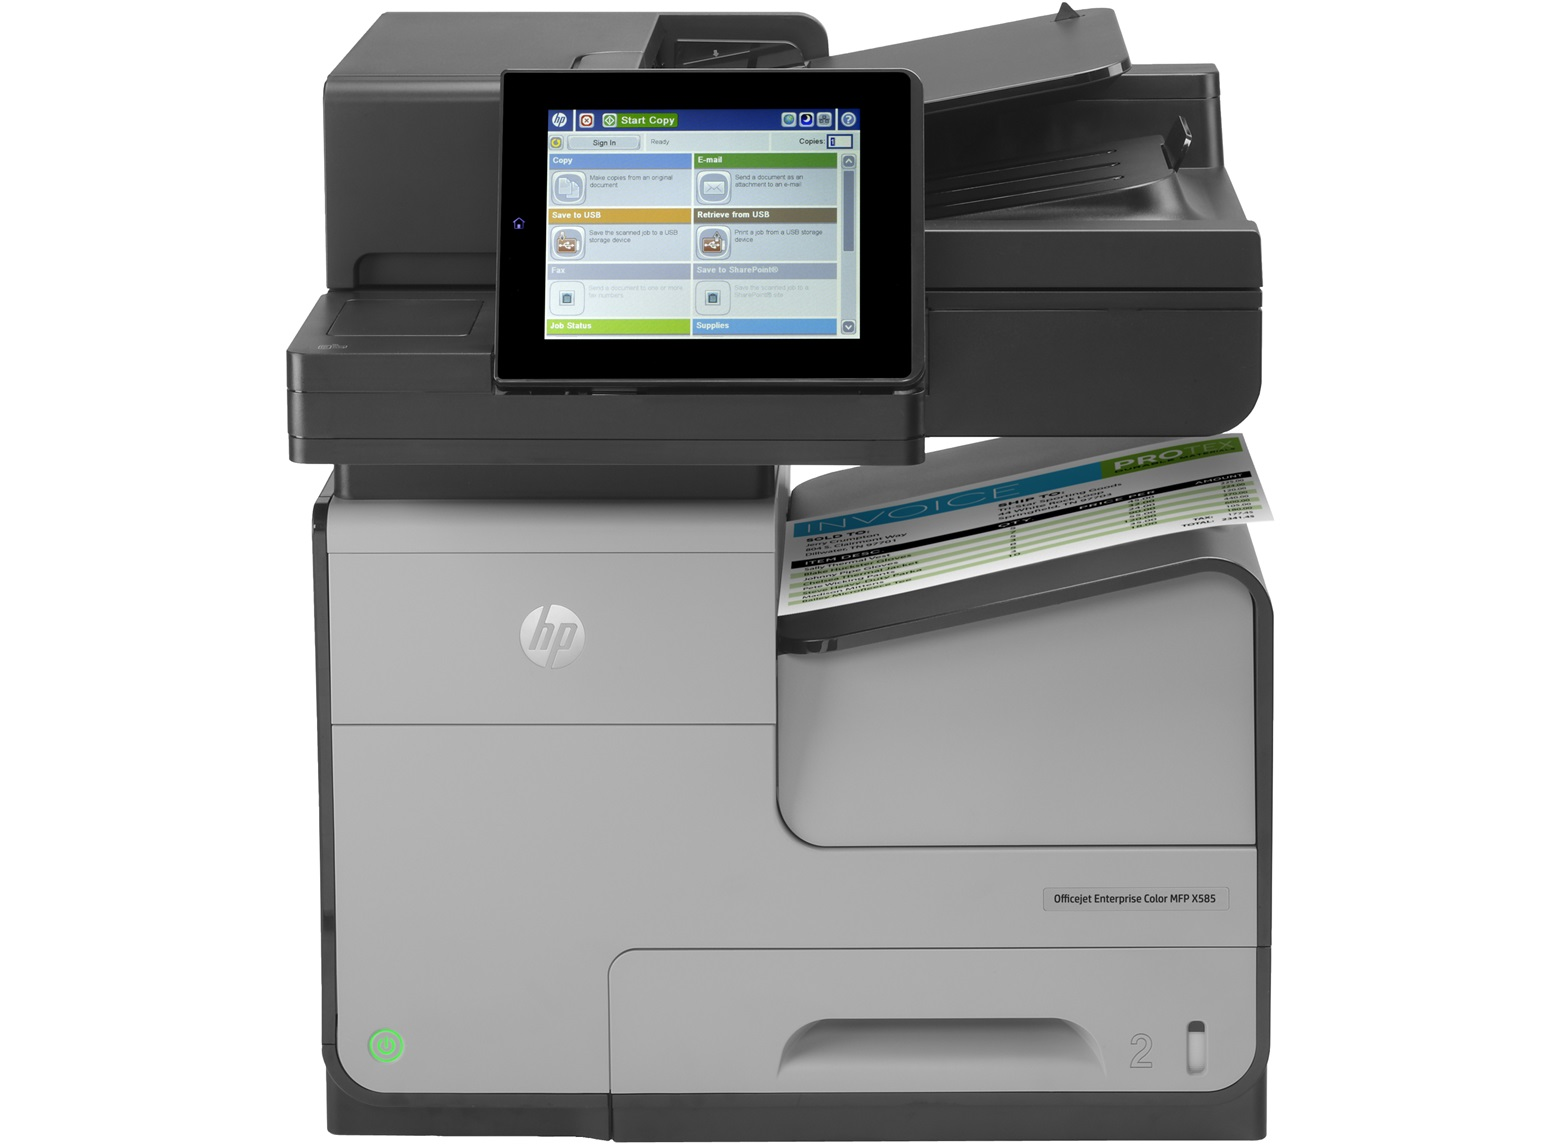 Officejet Enterprise Color X585f